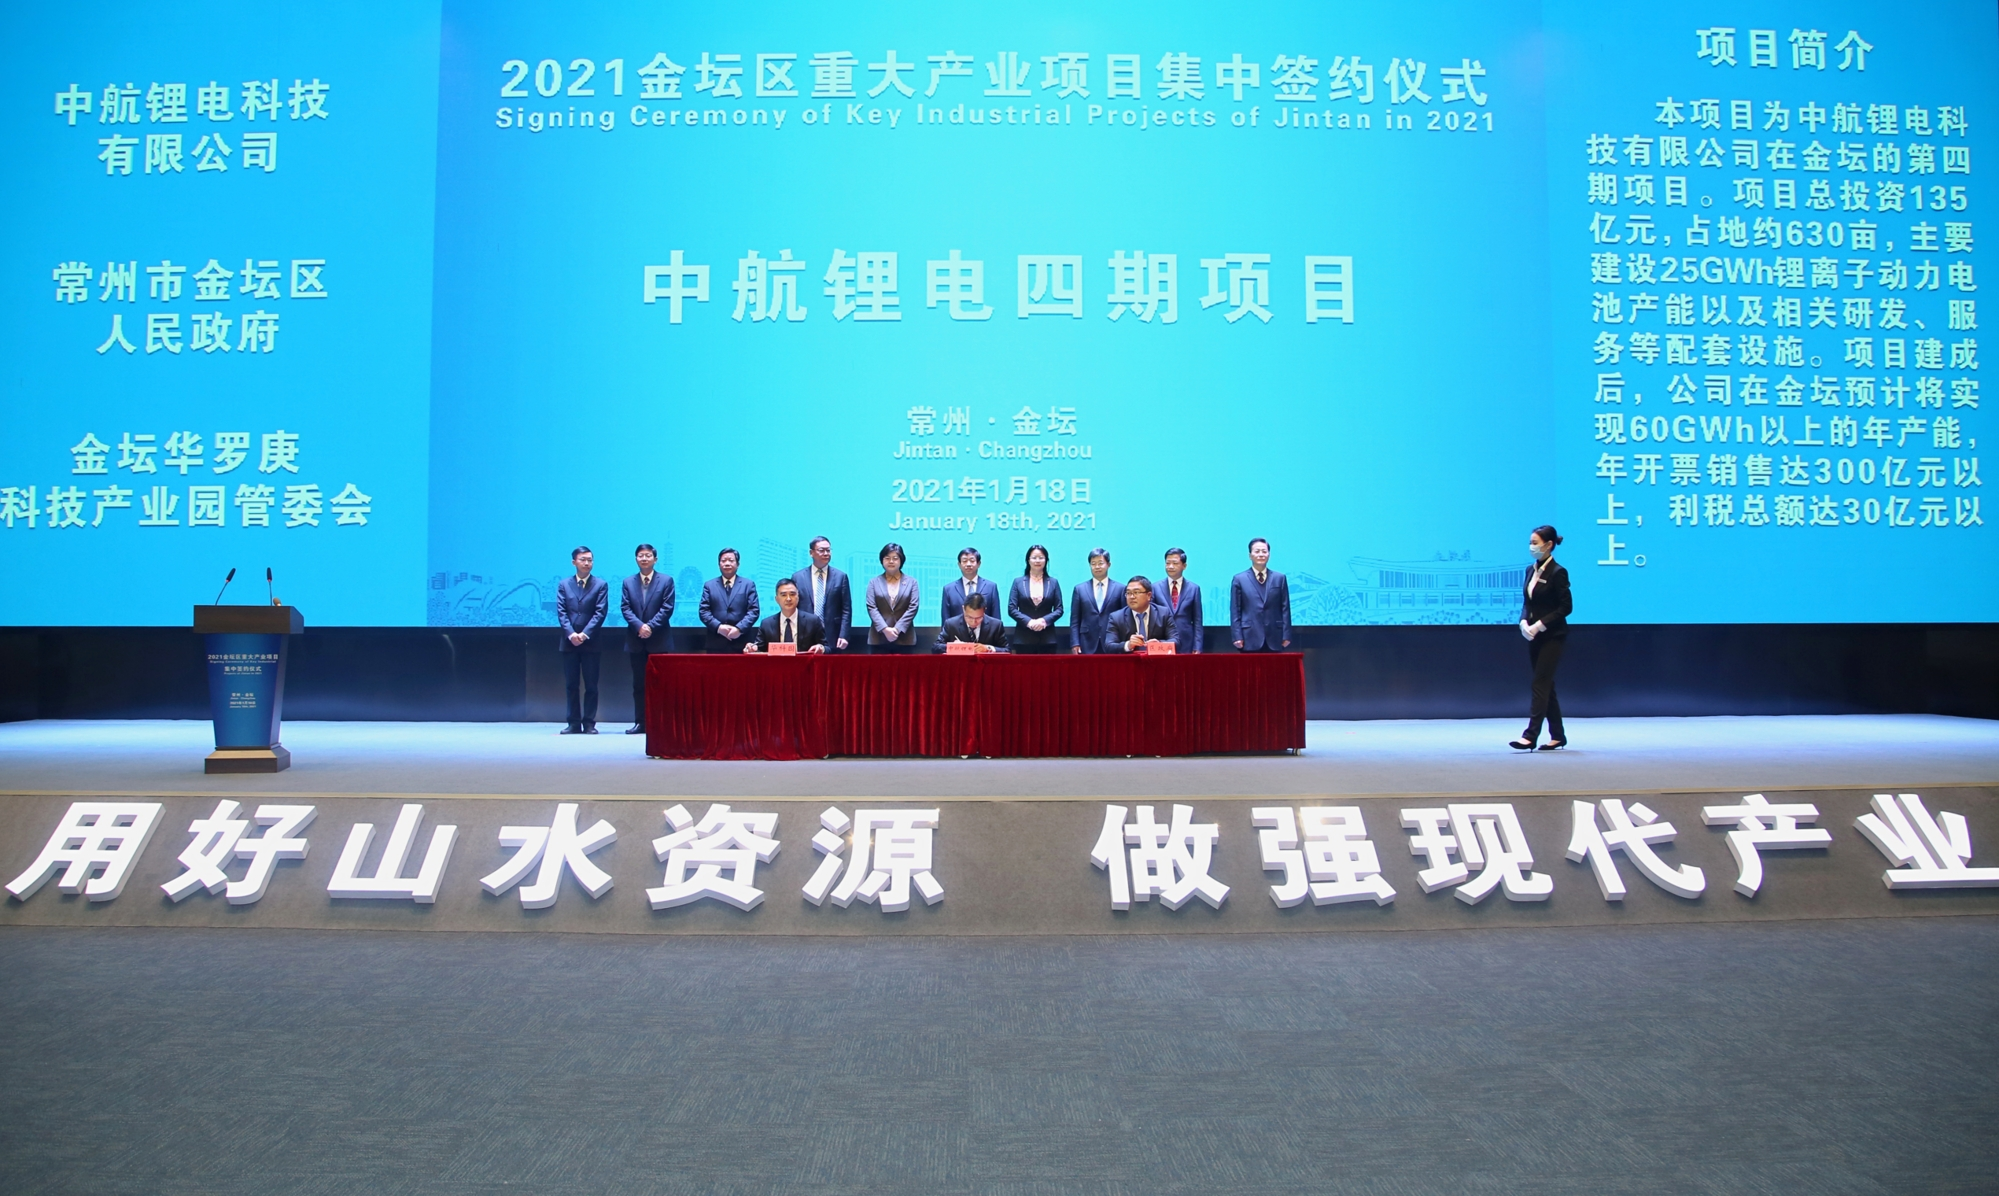 Adding 10 Billion Investment and Surpassing 100GWh of Production Capacity -- Signing of CALB Jiangsu Phase IV Project